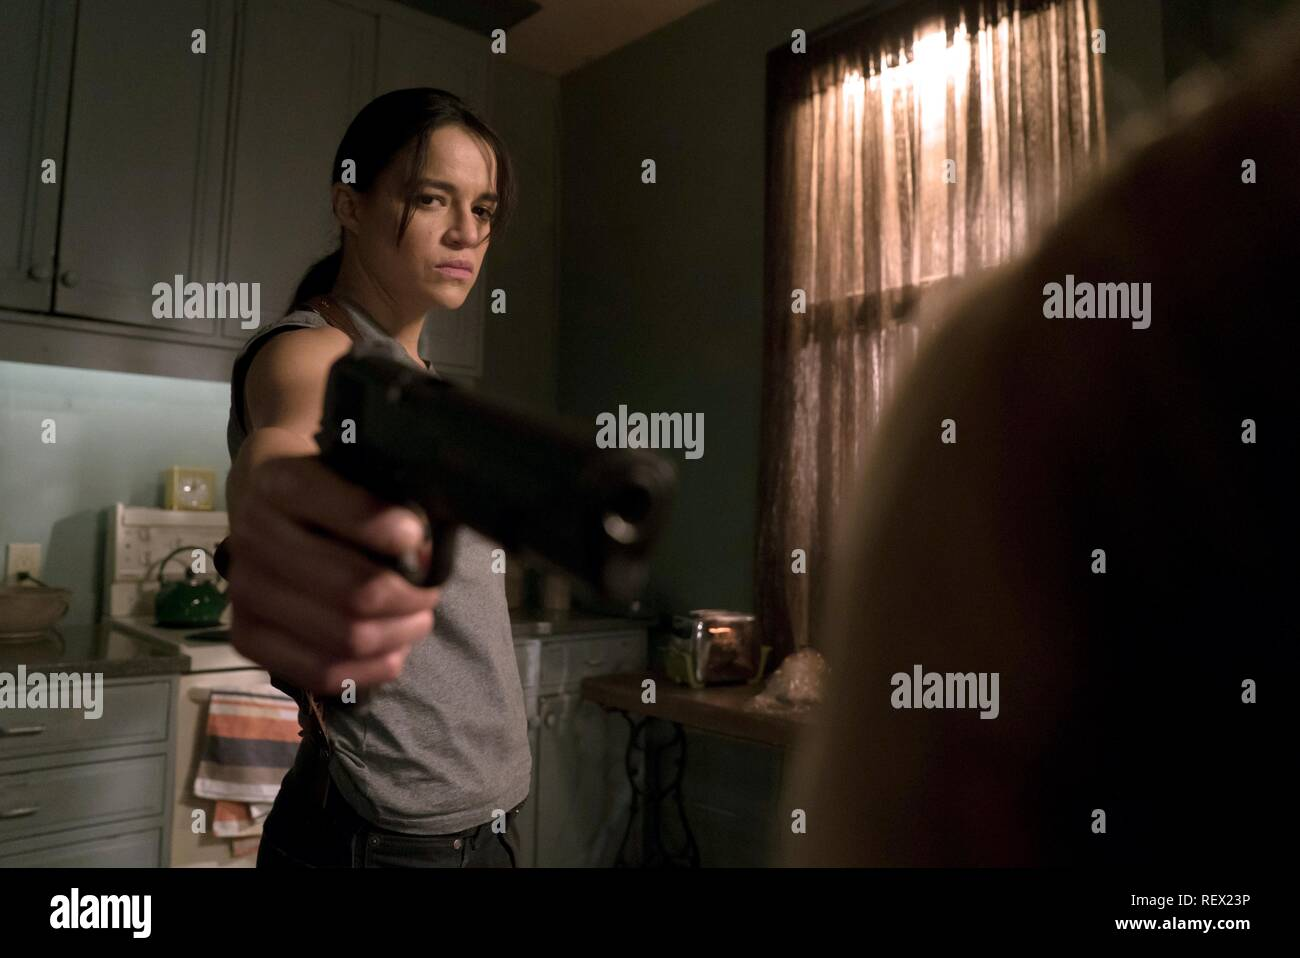 MICHELLE RODRIGUEZ THE ASSIGNMENT (2016) - Stock Image